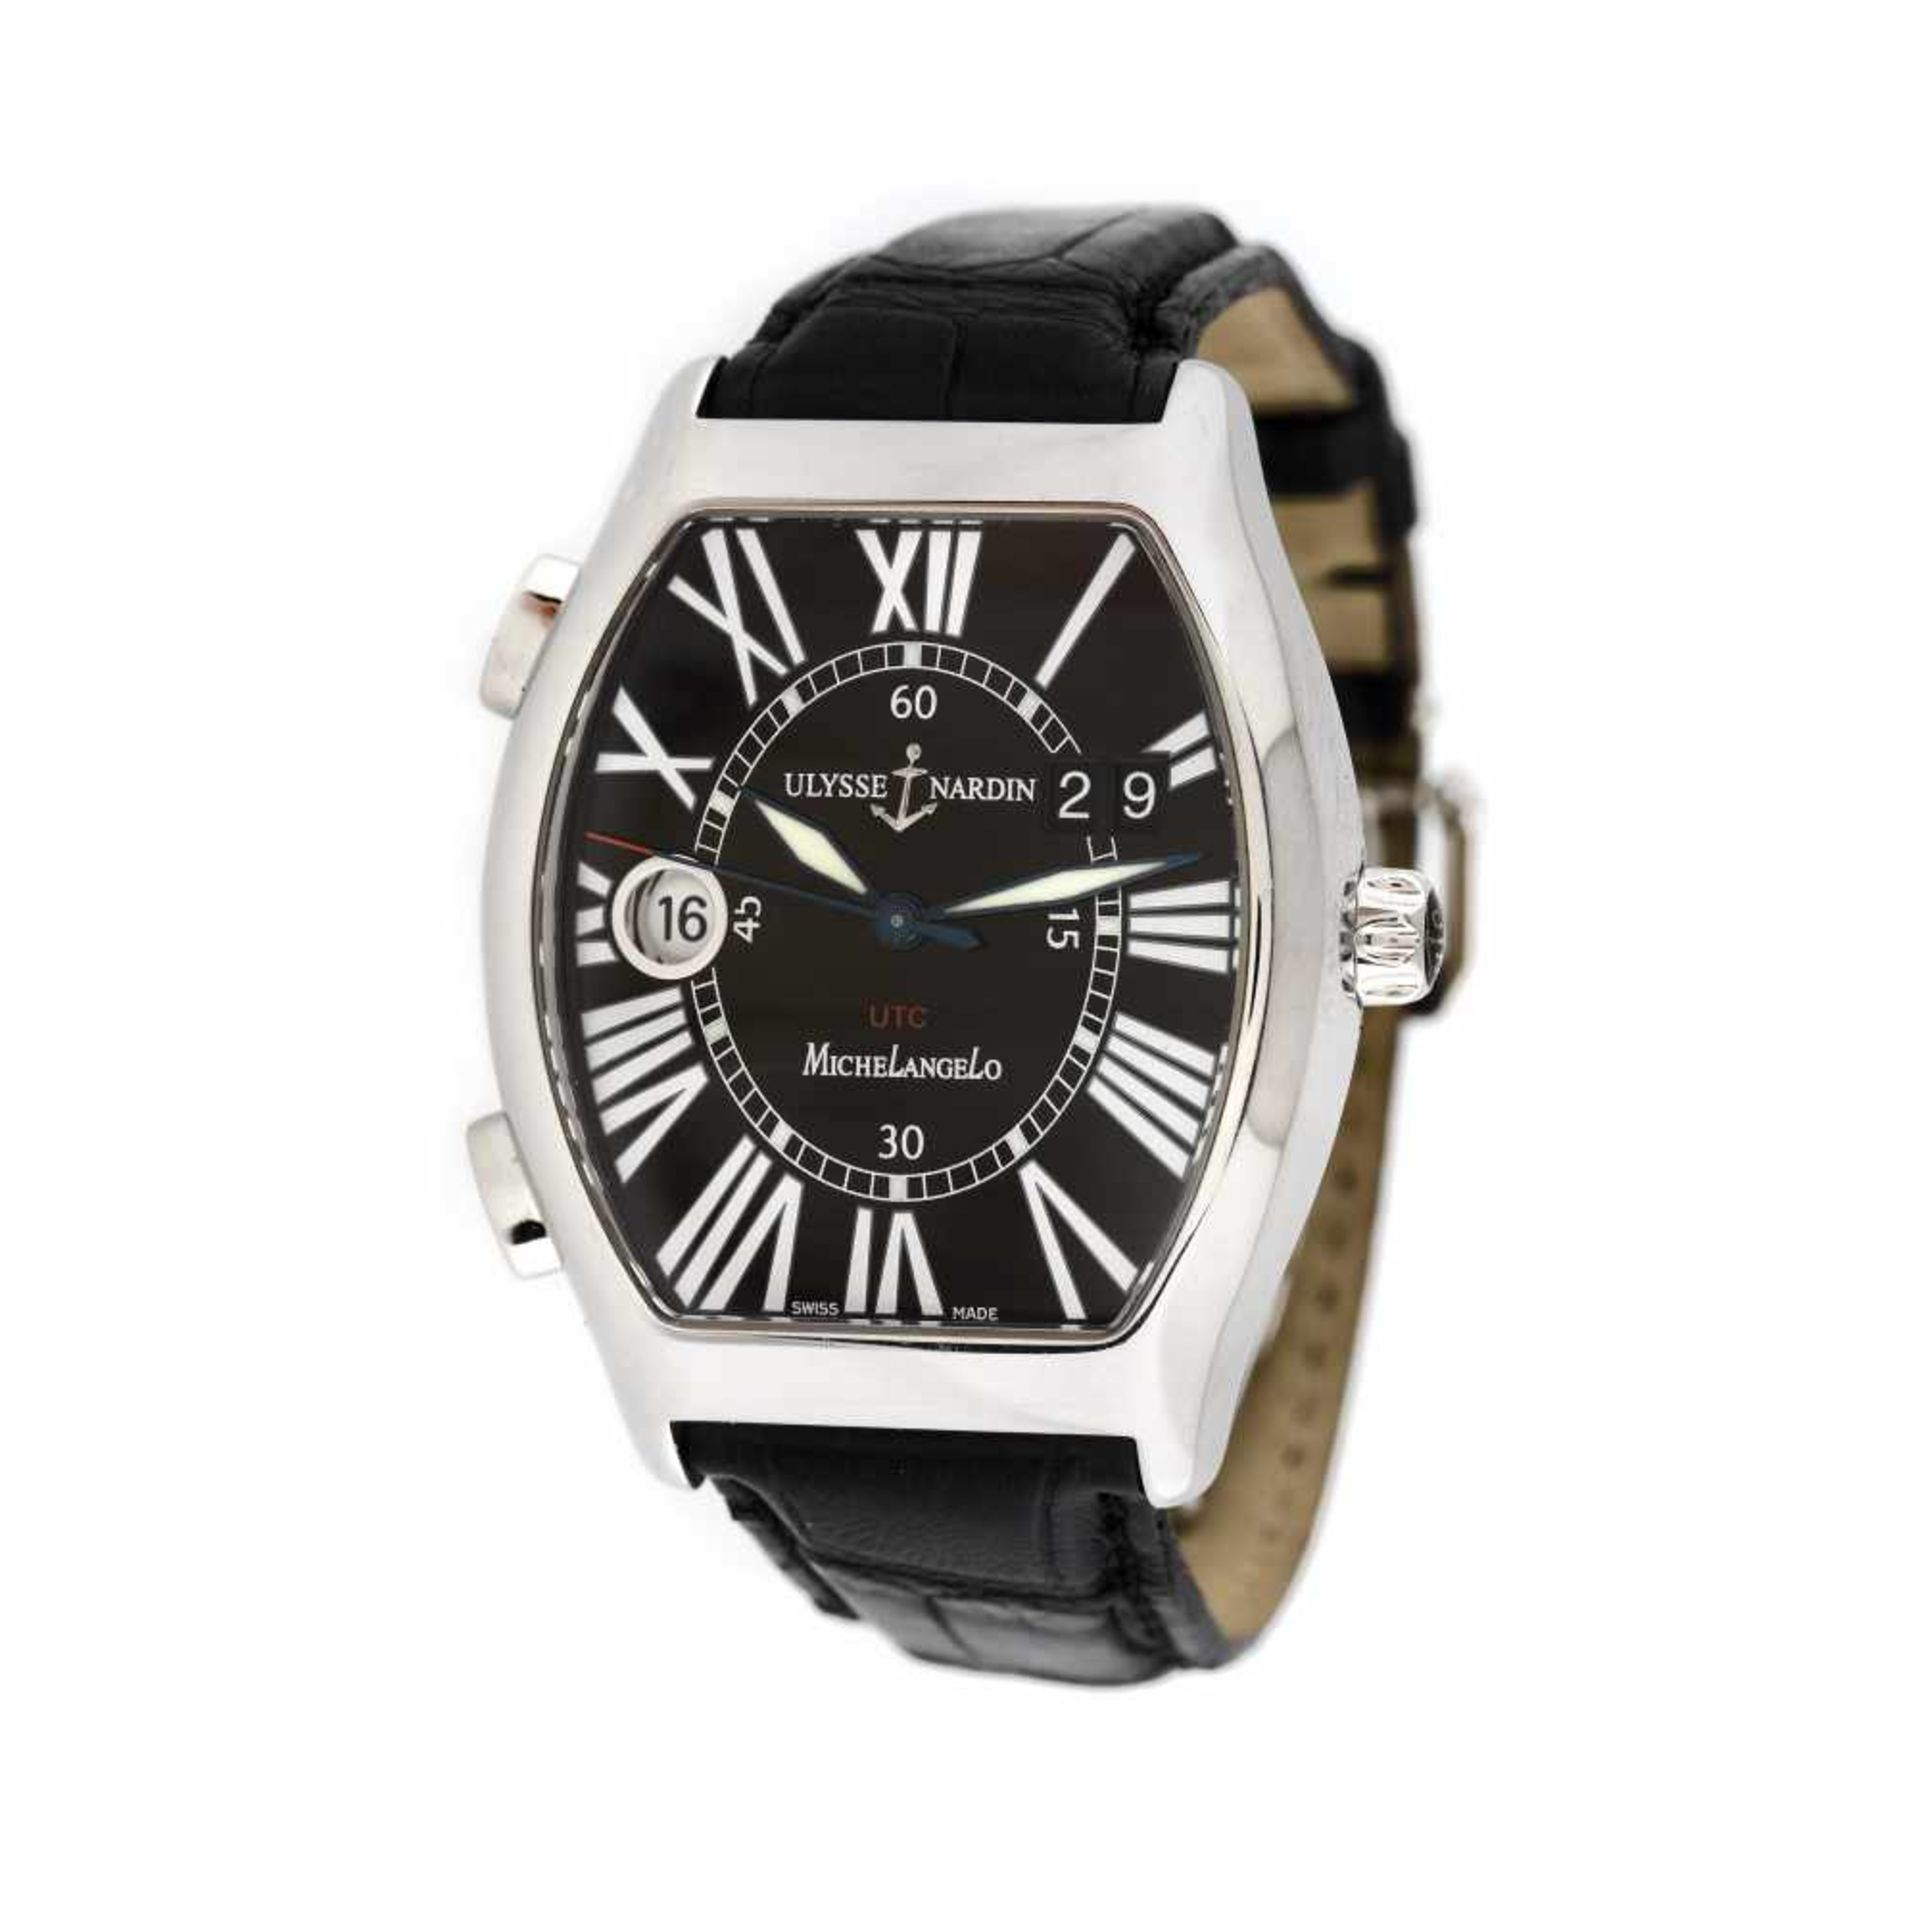 Ulysse Nardin Michelangelo Gigante UTC wristwatch, men